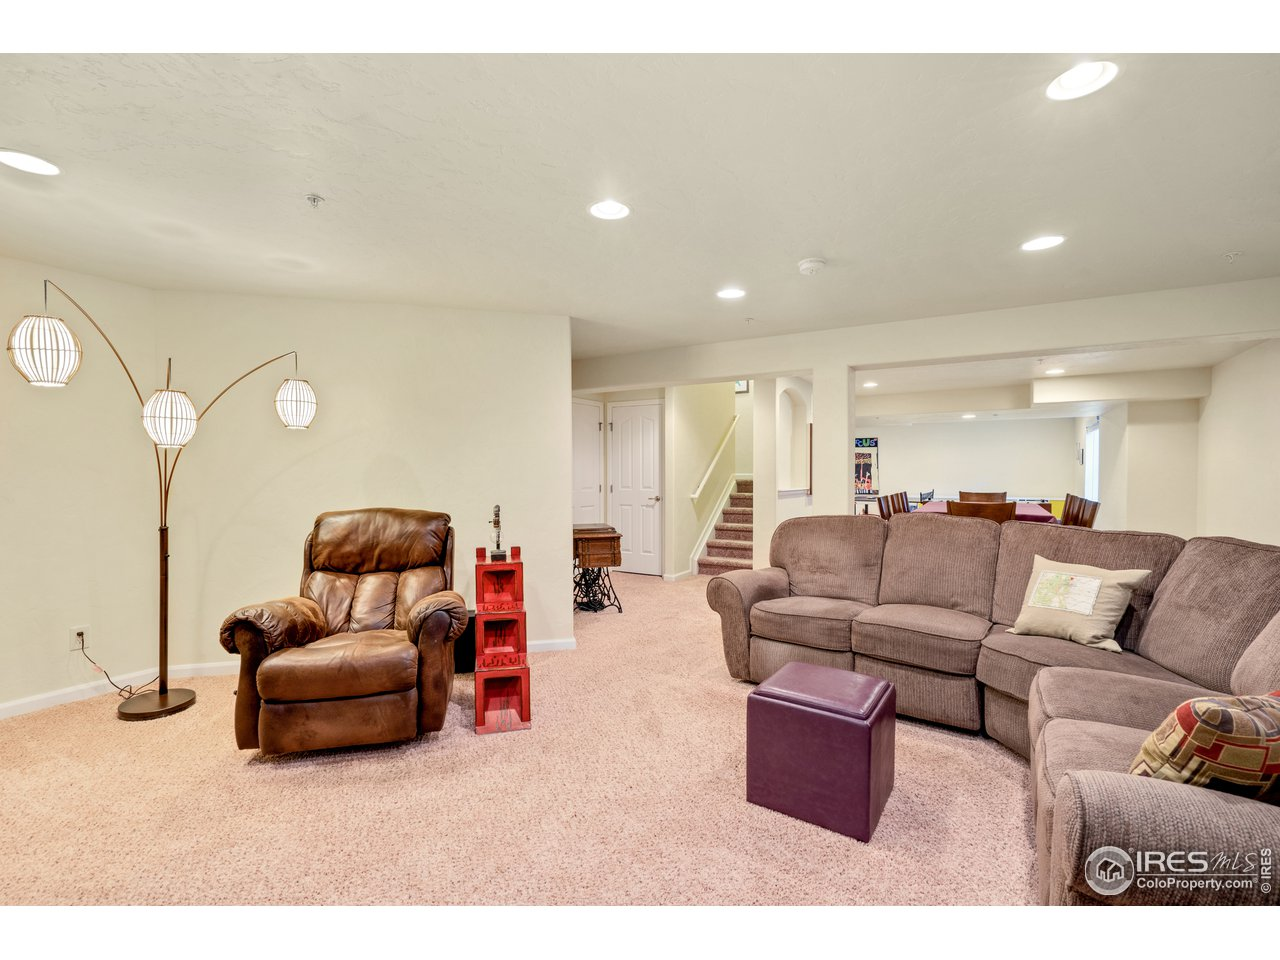 family room for movie night!